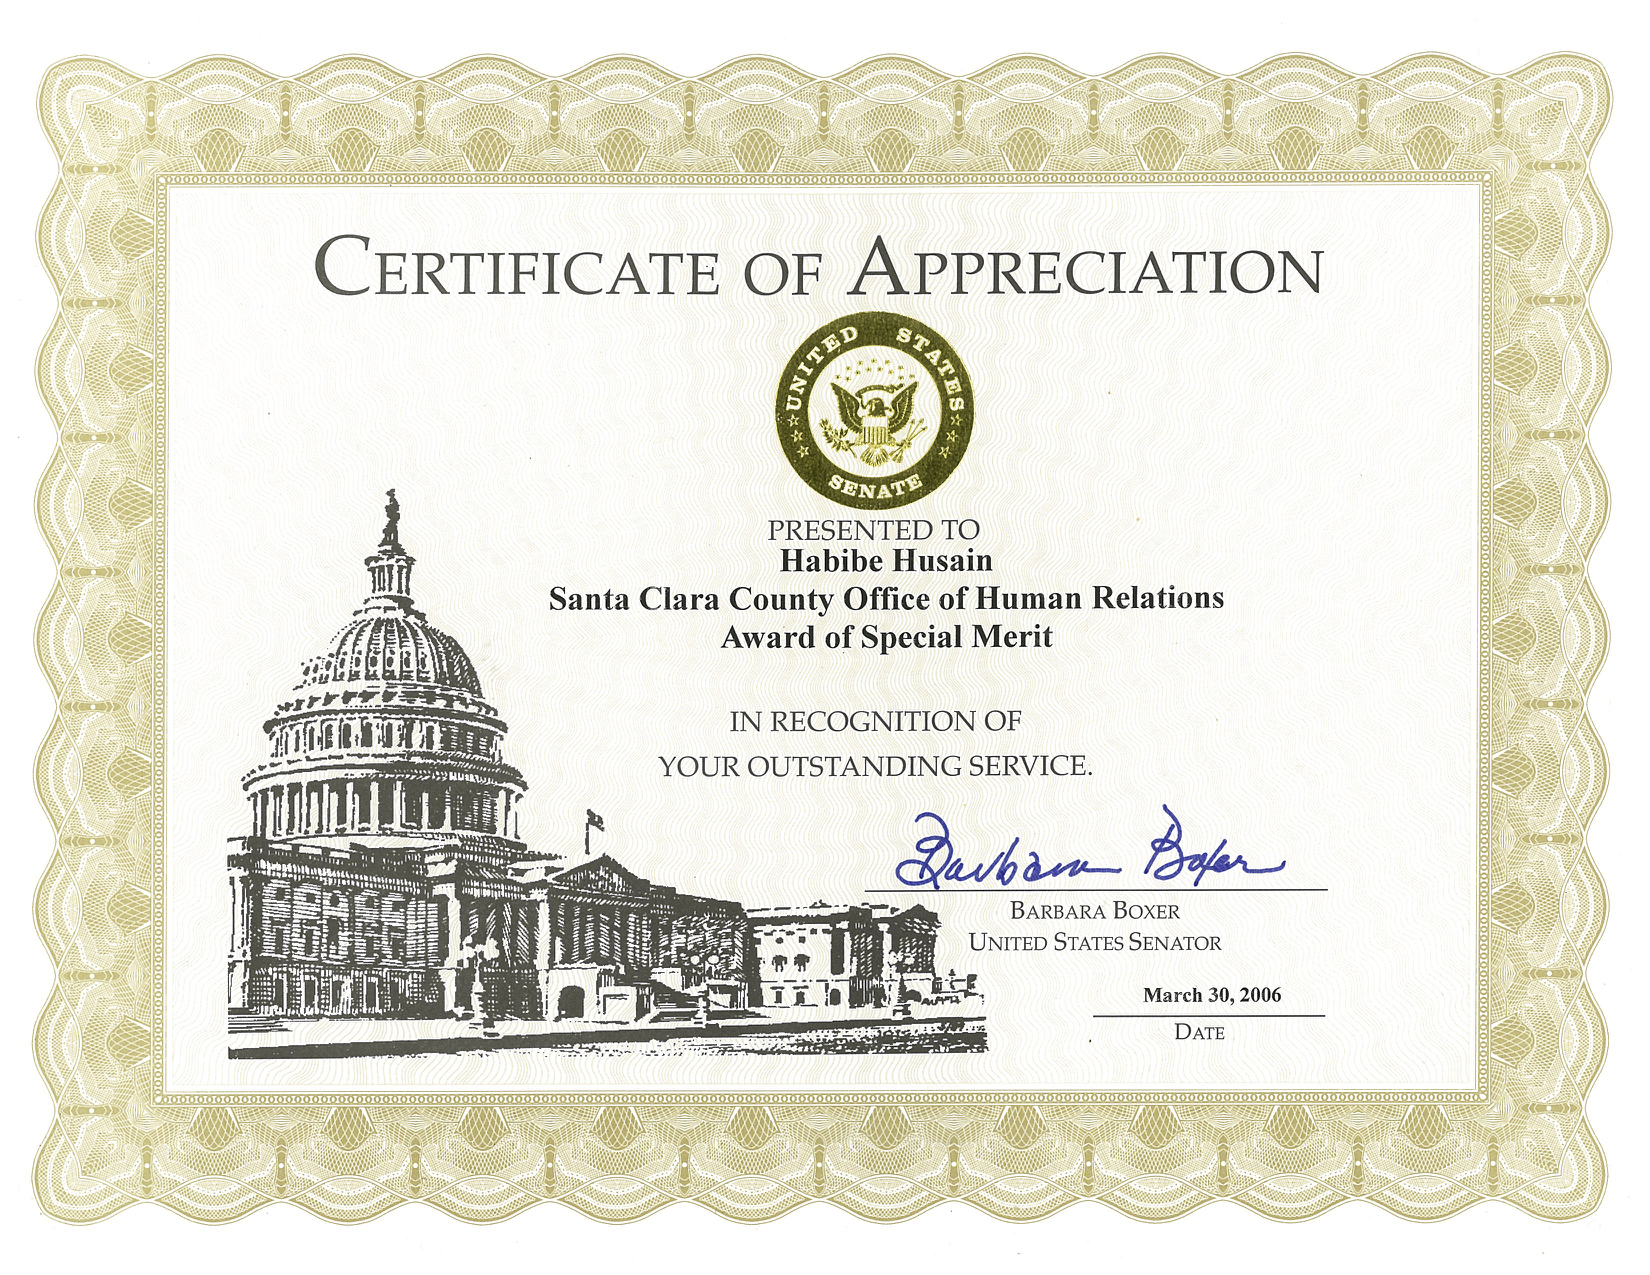 Certificate presented by Barbara Boxer from the United States Senate